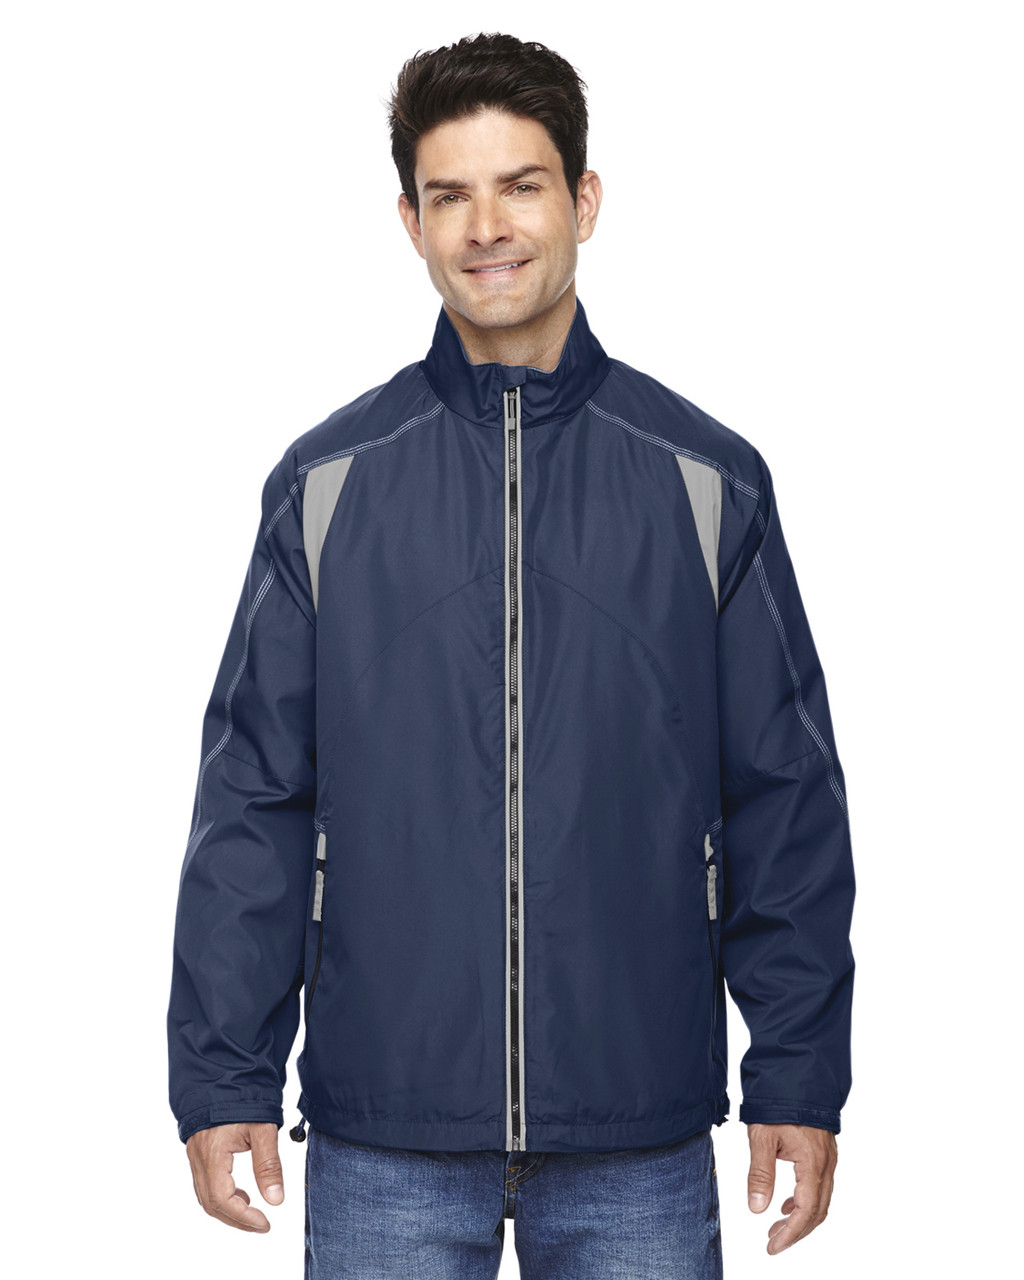 Night - 88155 North End Men's Lightweight Colour-Block Jacket | Blankclothing.ca